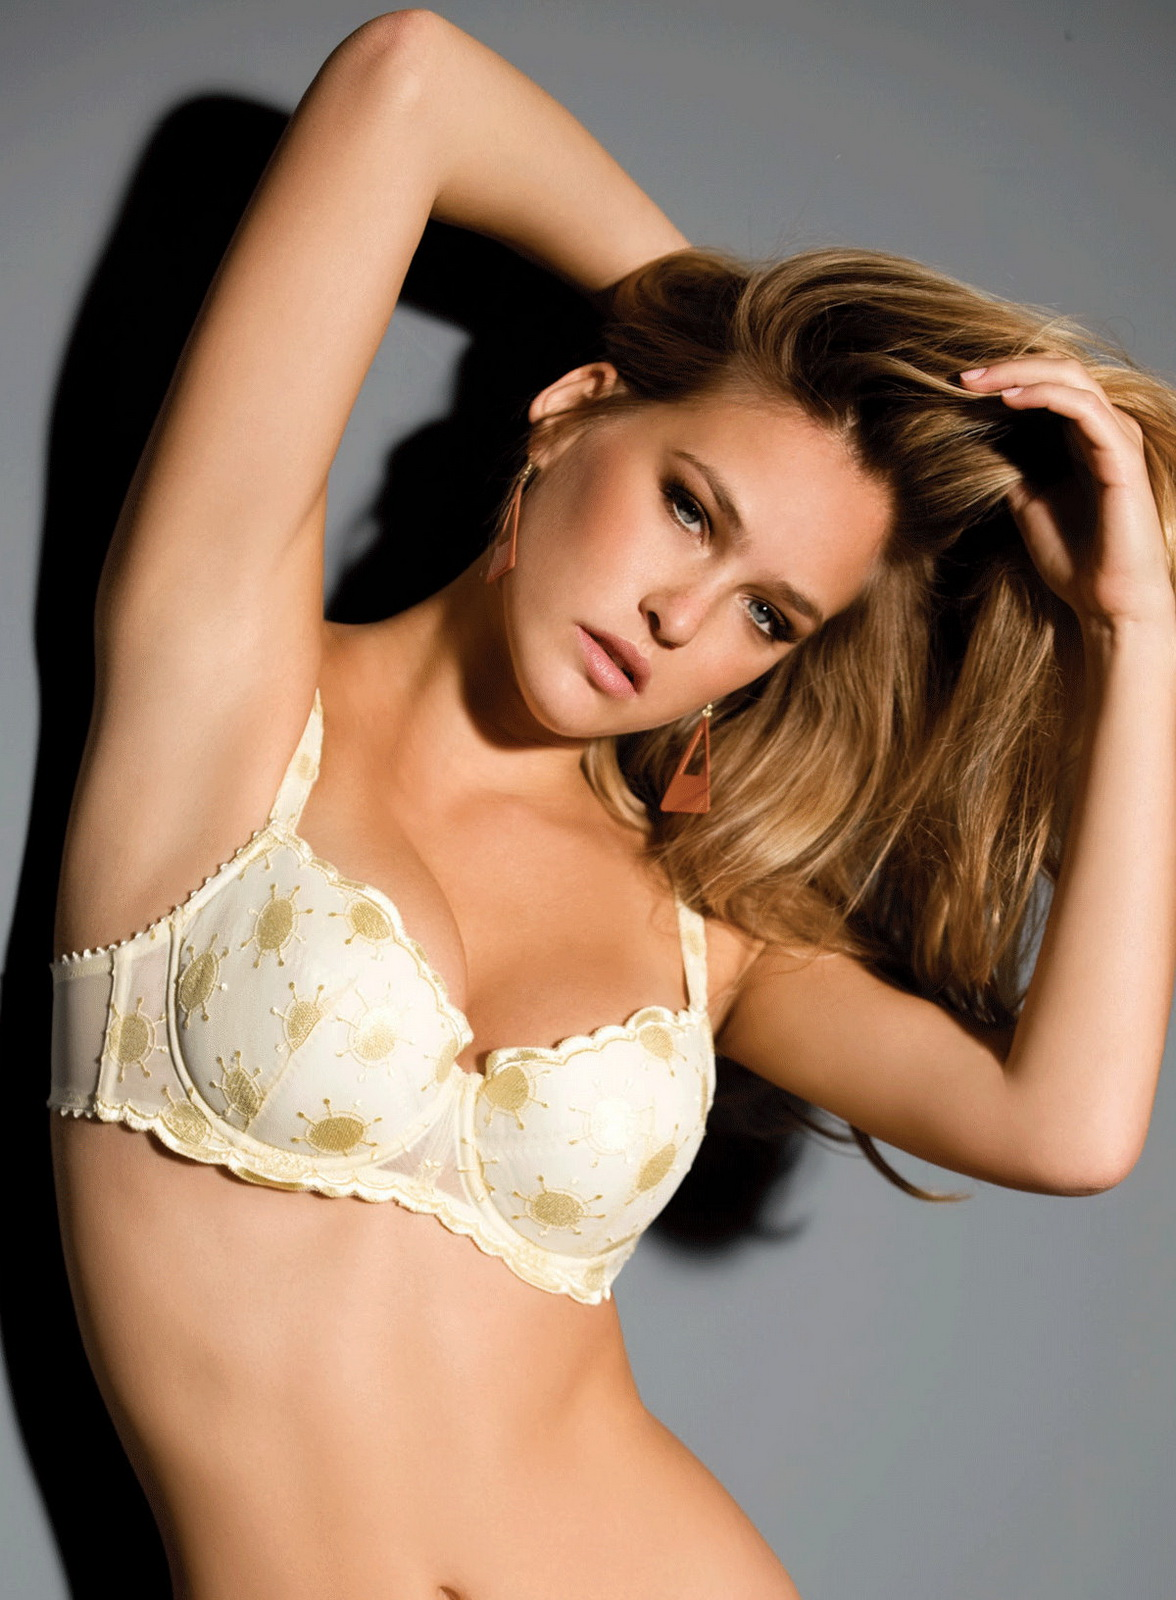 memek plus bar refaeli hot bonita de mas lingerie